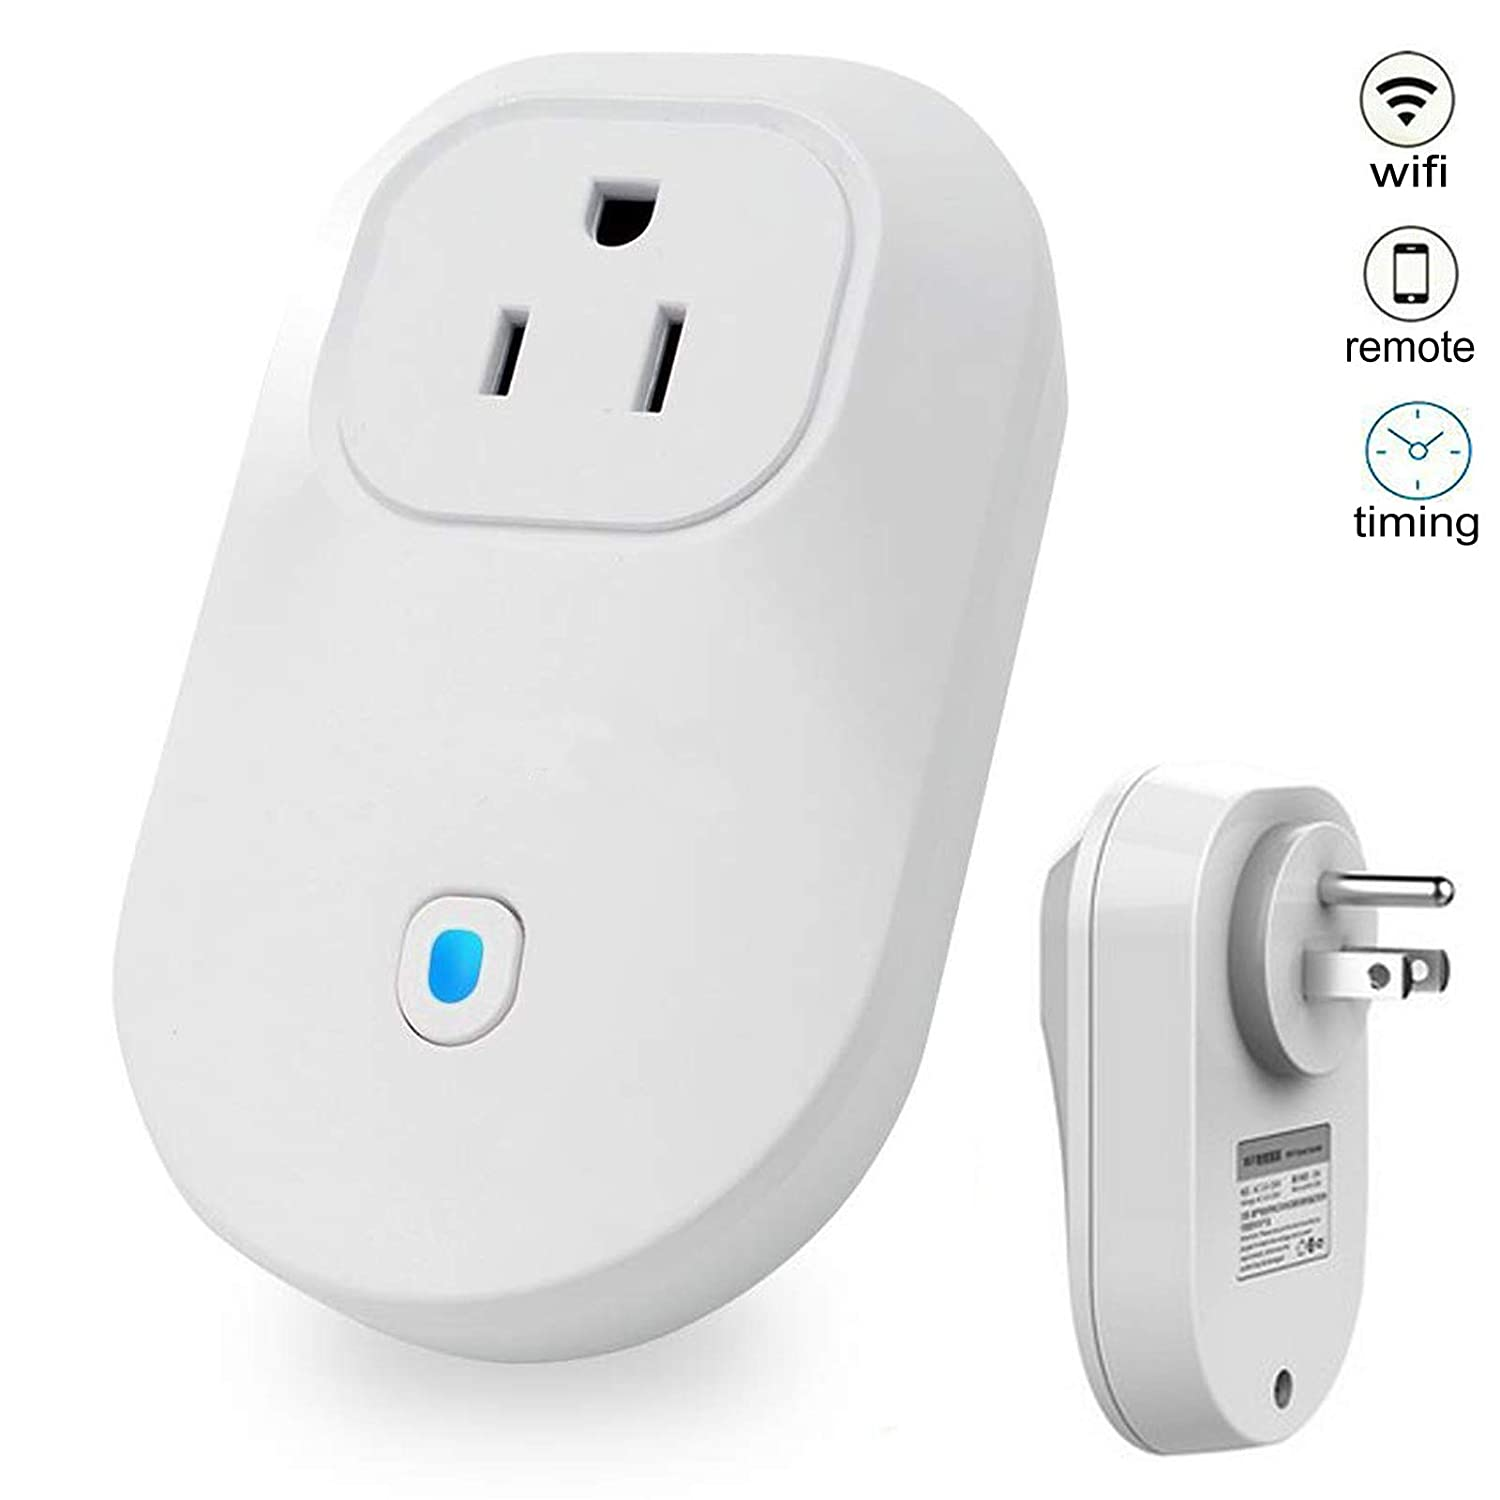 WiFi Smart Plug Outlet Socket US Plug Wireless Remote Controlled Switch Outlet with Home Automation App Energy Saving Smart Outlet Timing Function No Hub Required for Bedroom Home Office Travel Phone